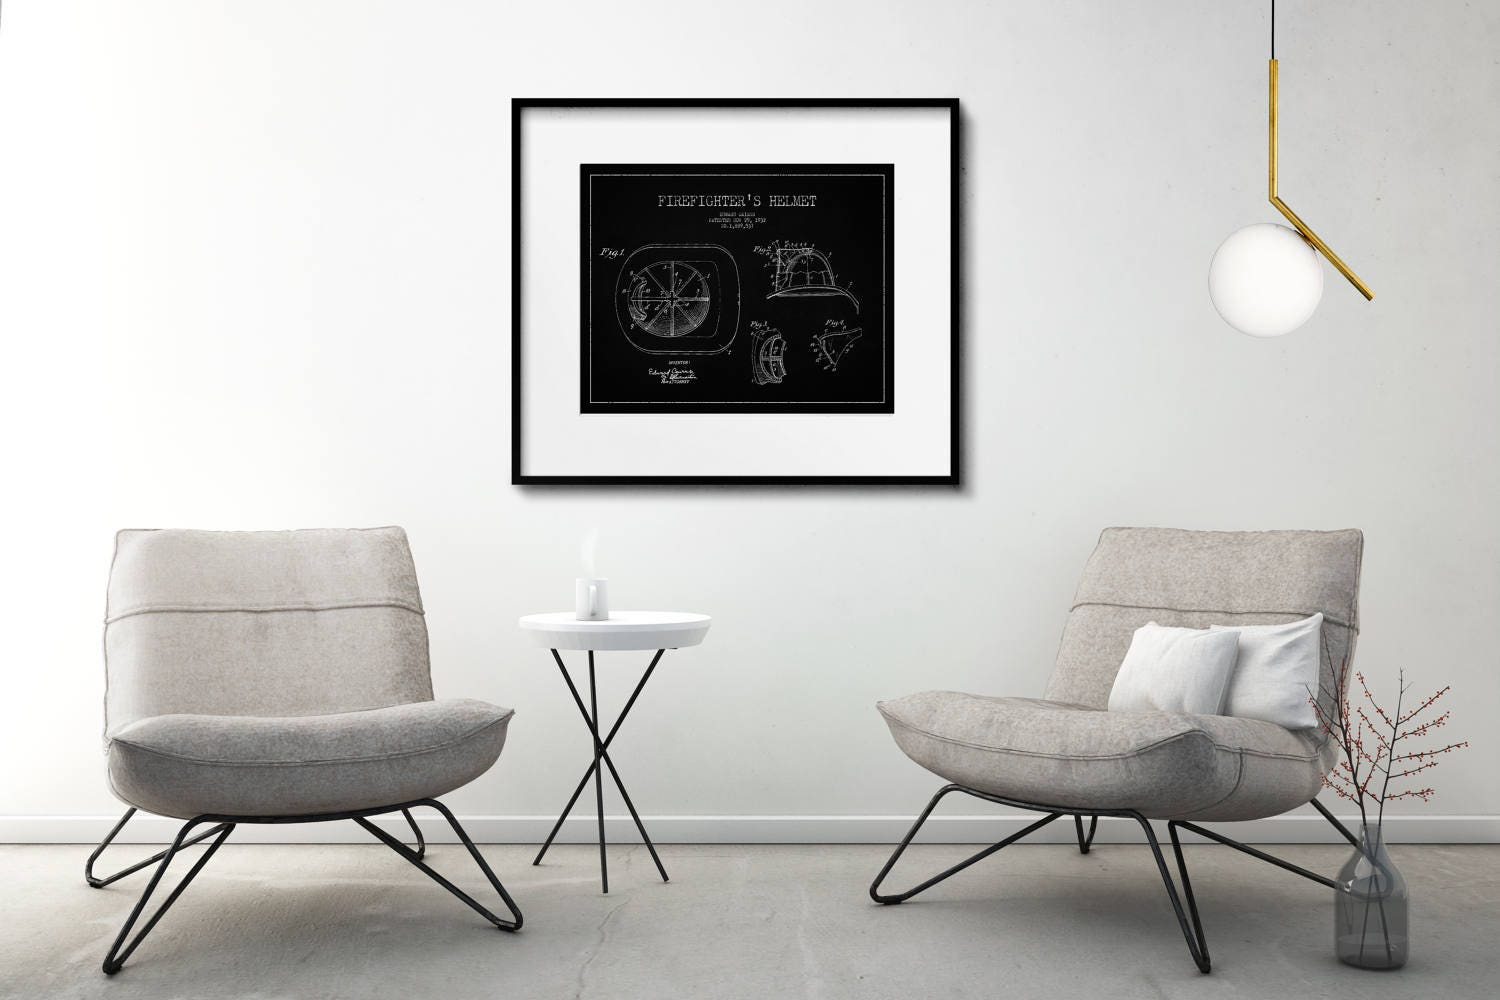 Firefighter Patent Print Matted And Framed Or Just Matted